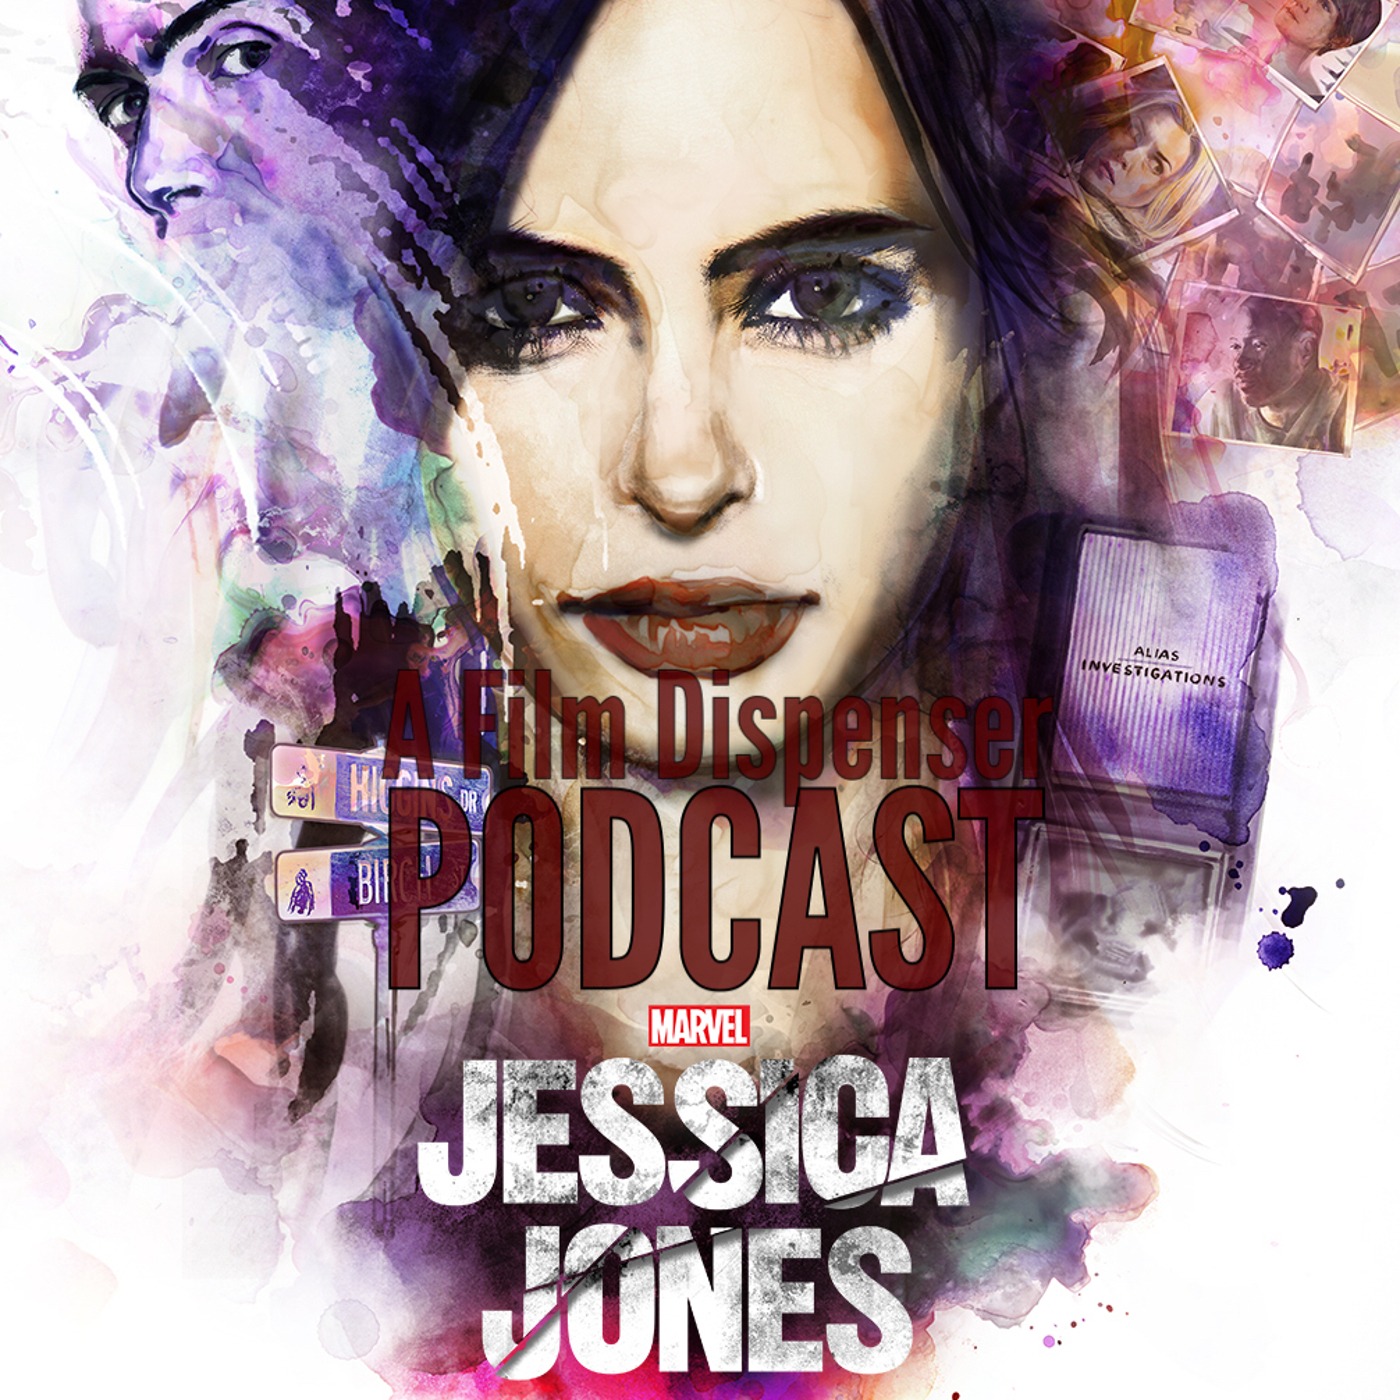 Jessica Jones: A Film Dispenser Podcast